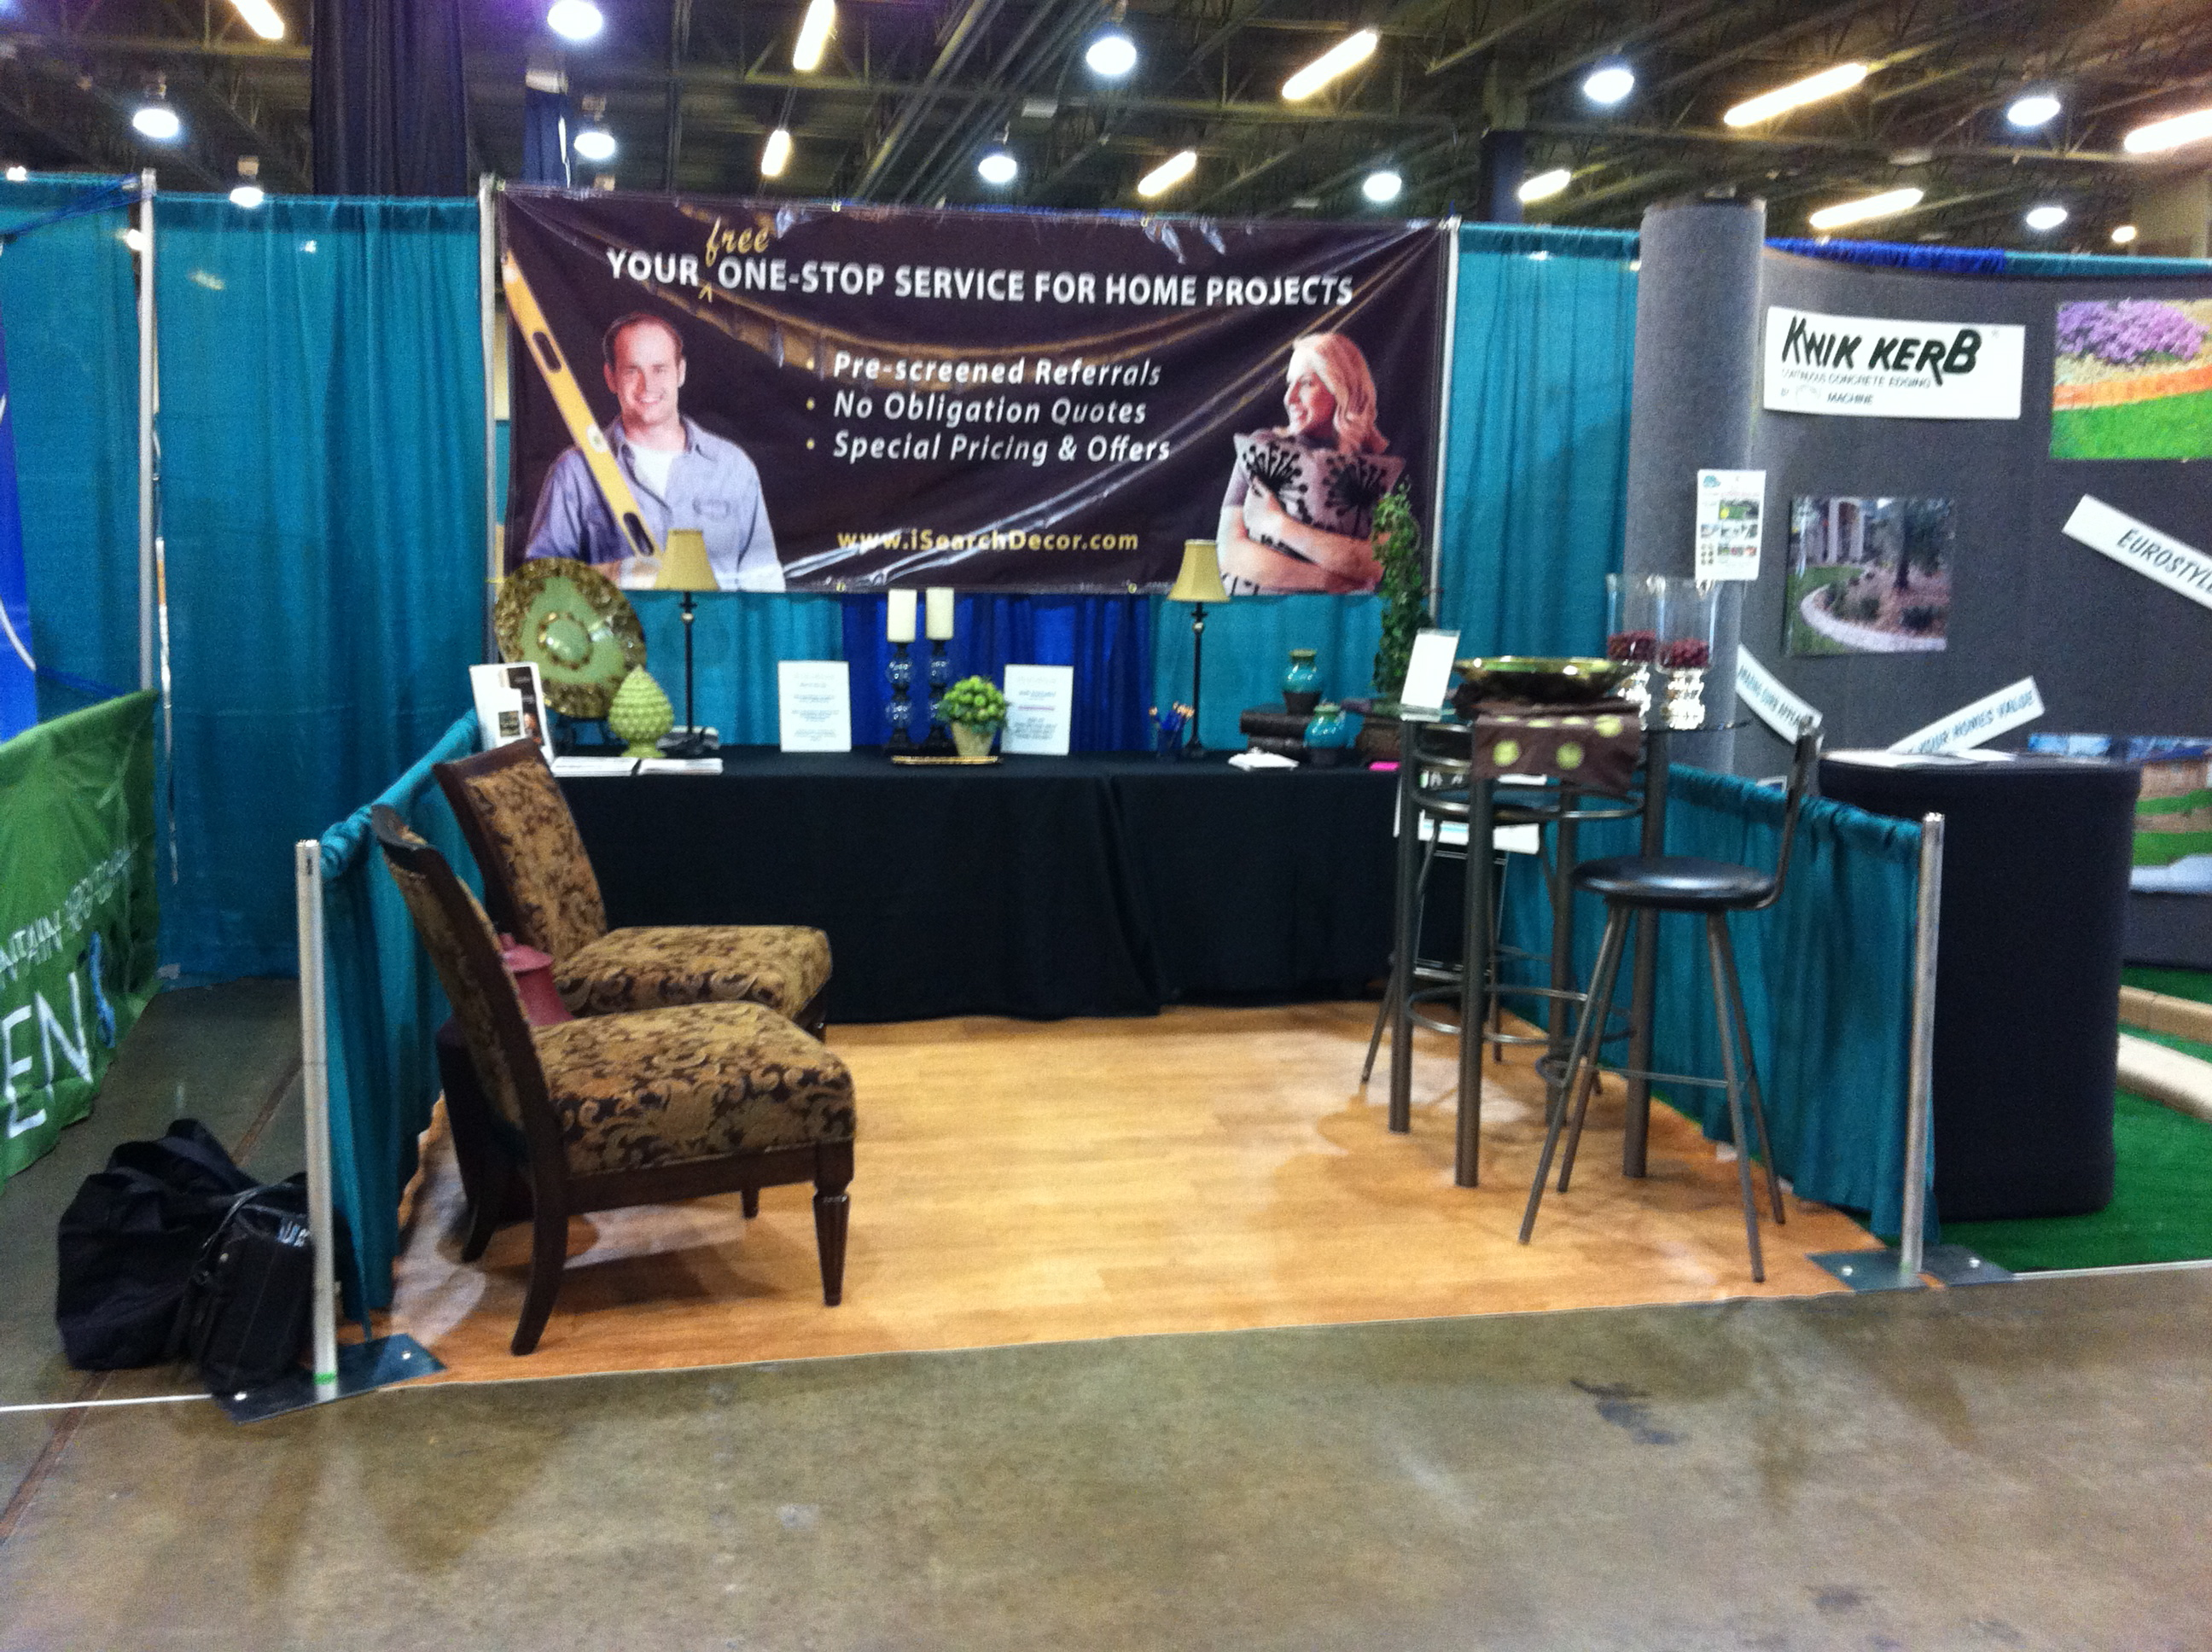 dallas home decor home improvement service pros dallas home show - Home And Garden Show Dallas